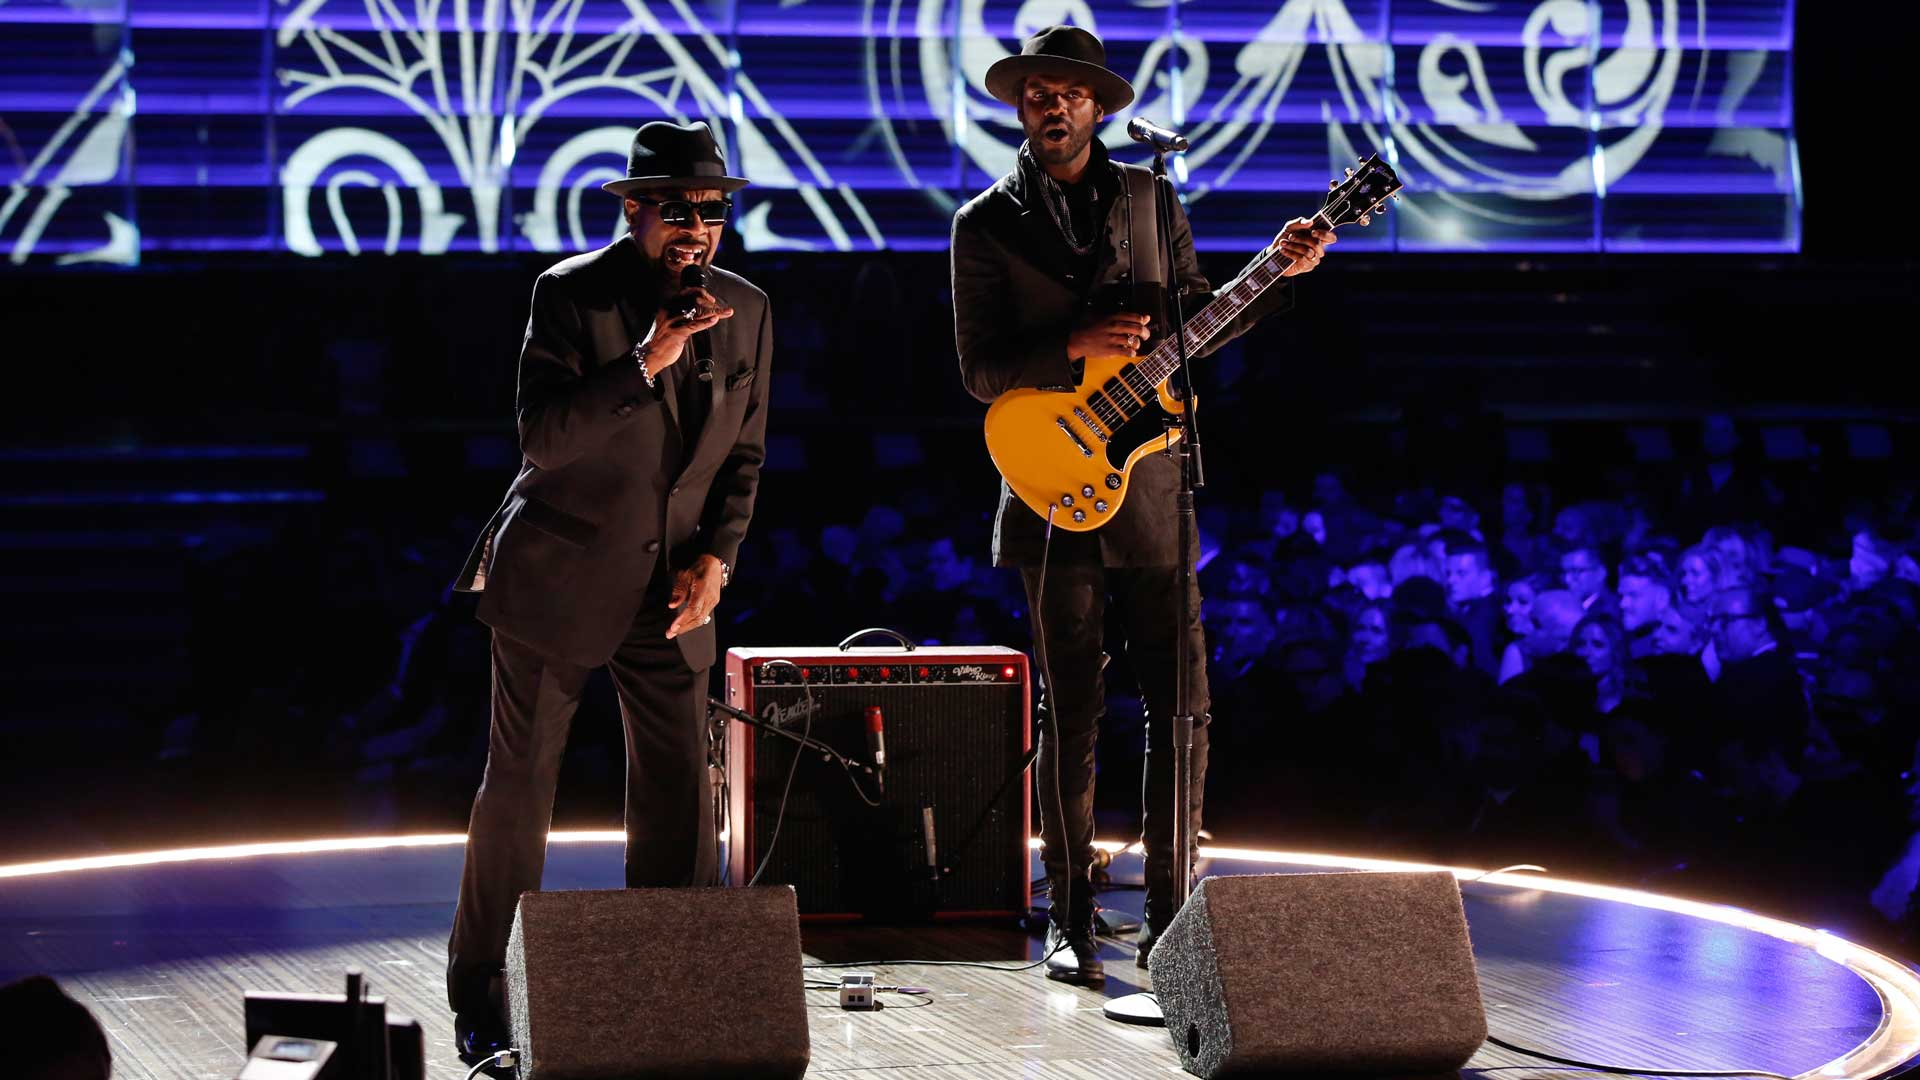 William Bell and Gary Clark Jr. perform